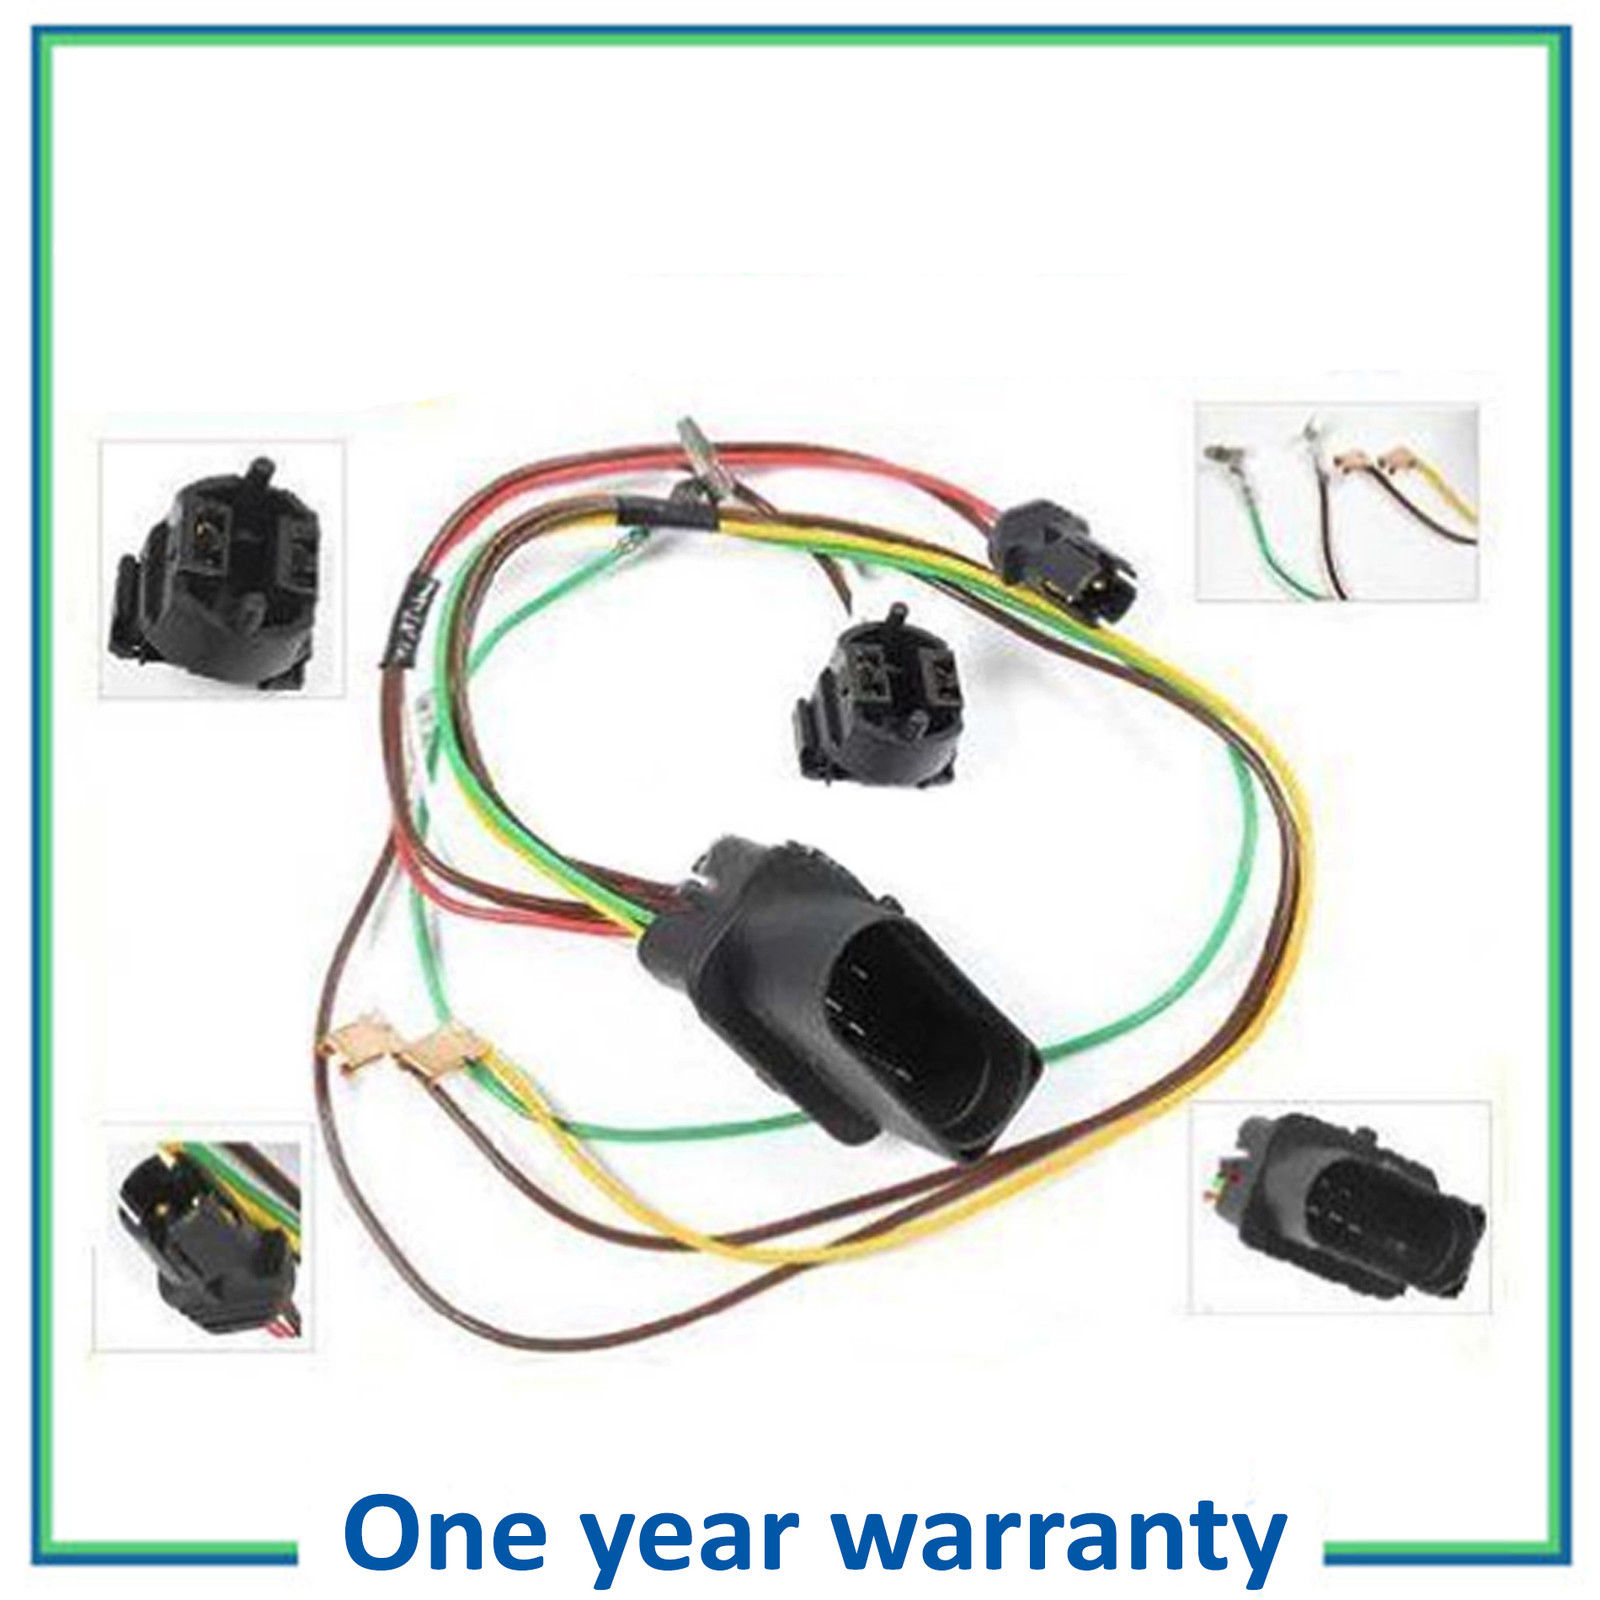 hight resolution of details about right headlight head lamp wiring harness connector for repair kit vw passat